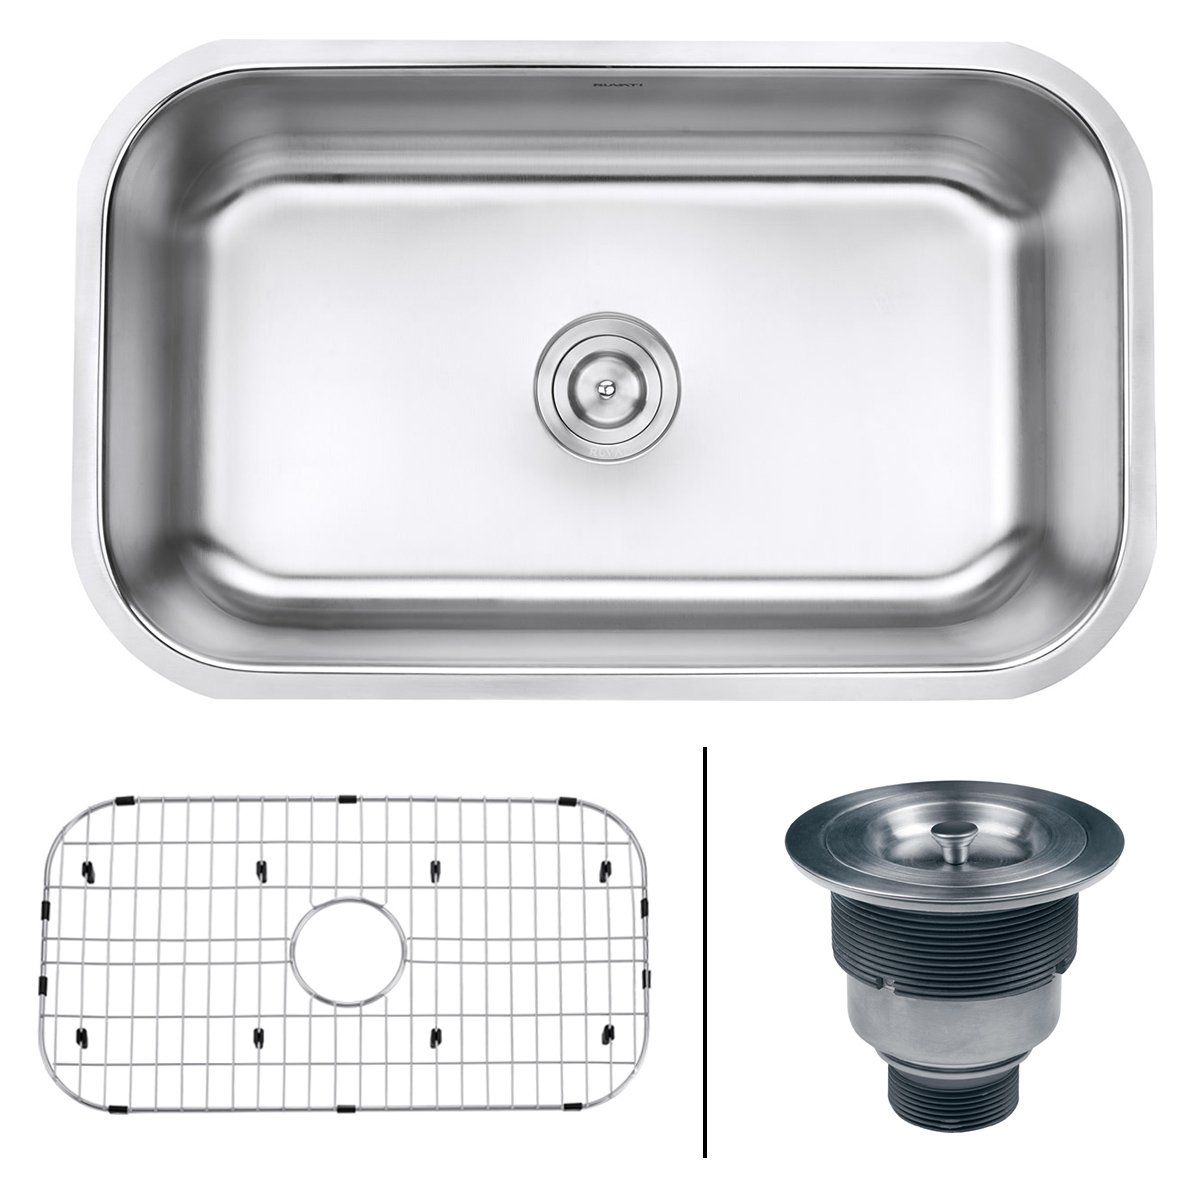 Merveilleux Ruvati 30 Inch Undermount 16 Gauge Stainless Steel Kitchen Sink Single Bowl    RVM4250